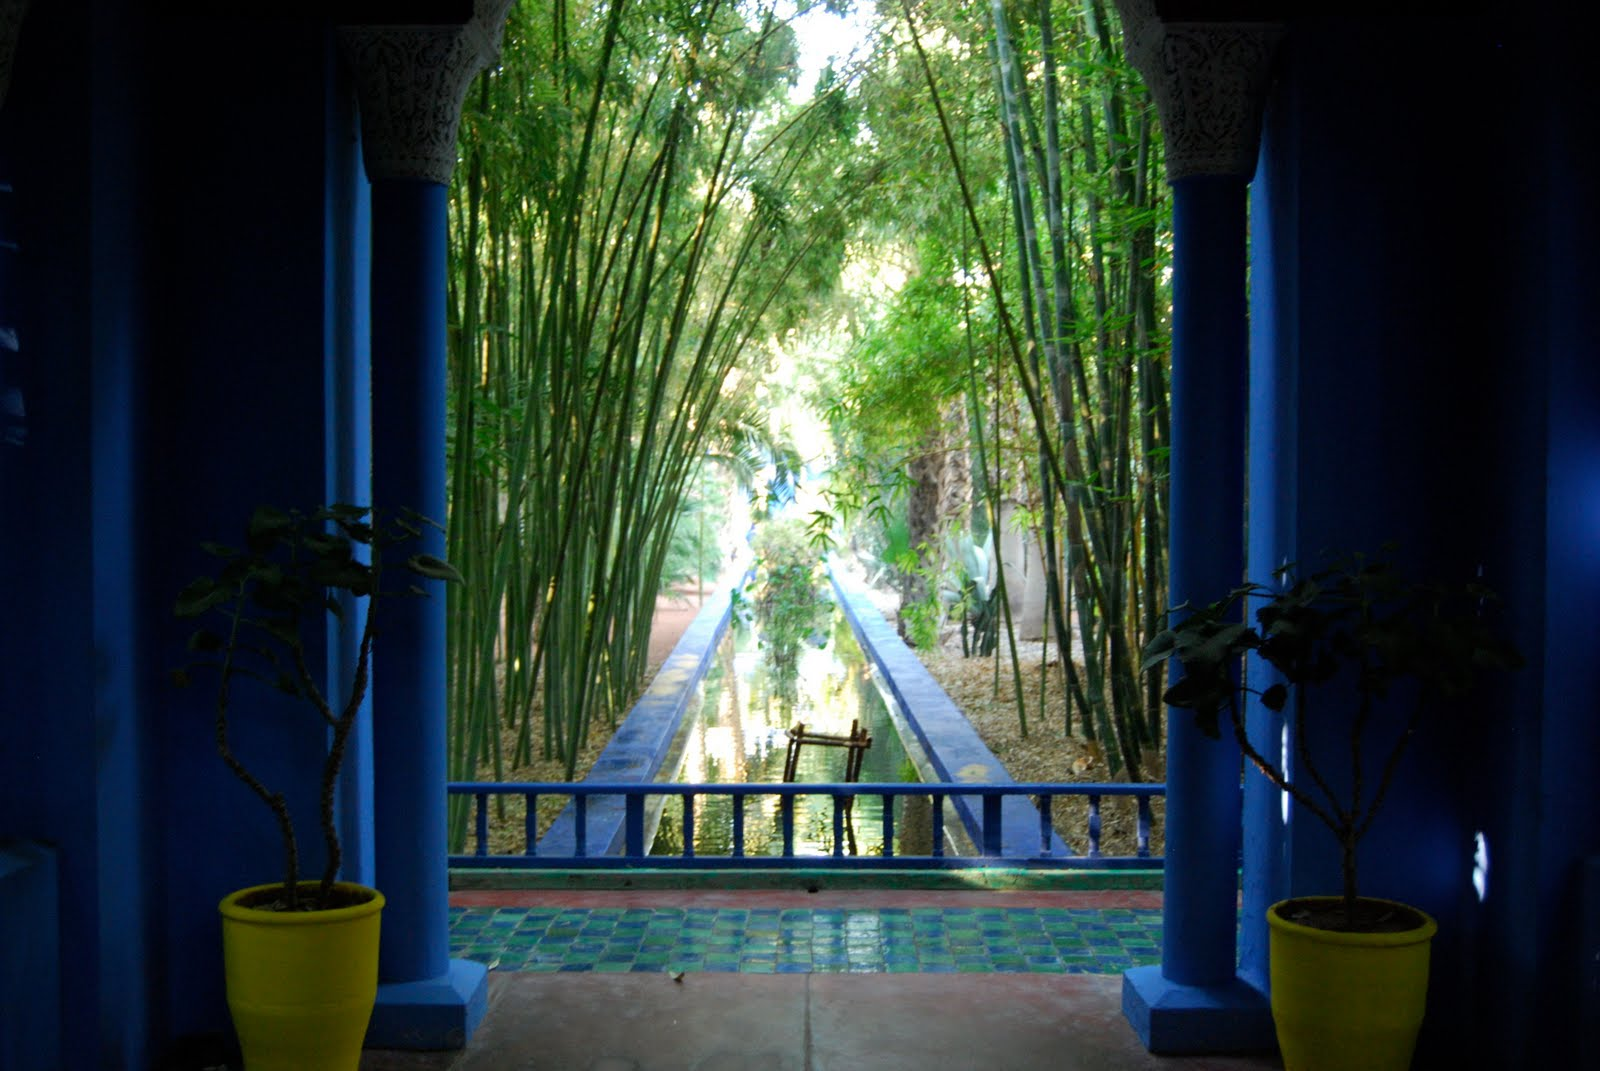 The josh also rises marrakesh jardin majorelle for Jardin yves saint laurent maroc